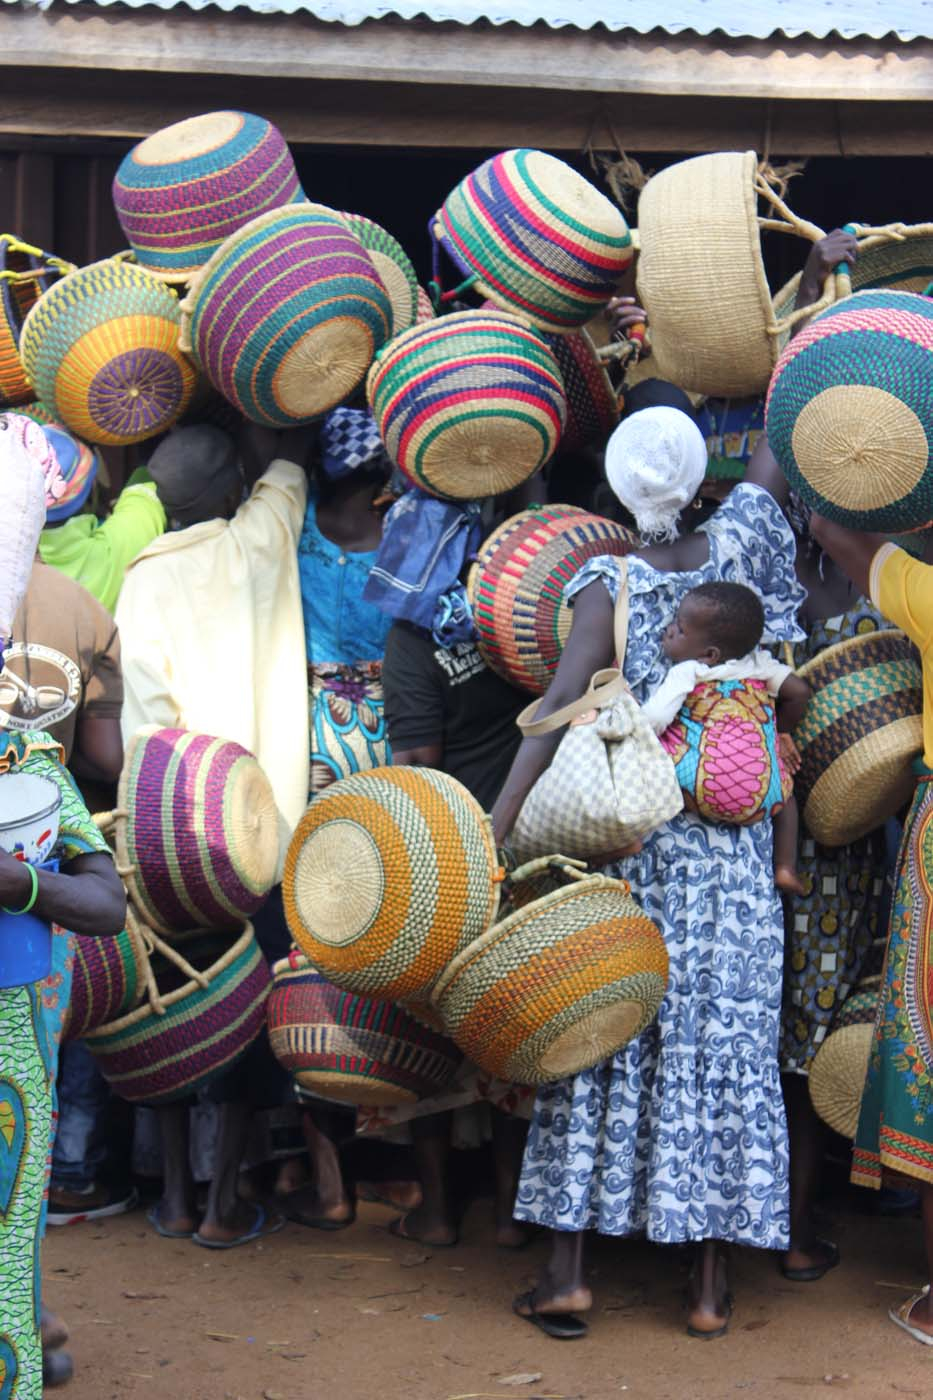 A throng of weavers and villagers offer up their baskets to sell